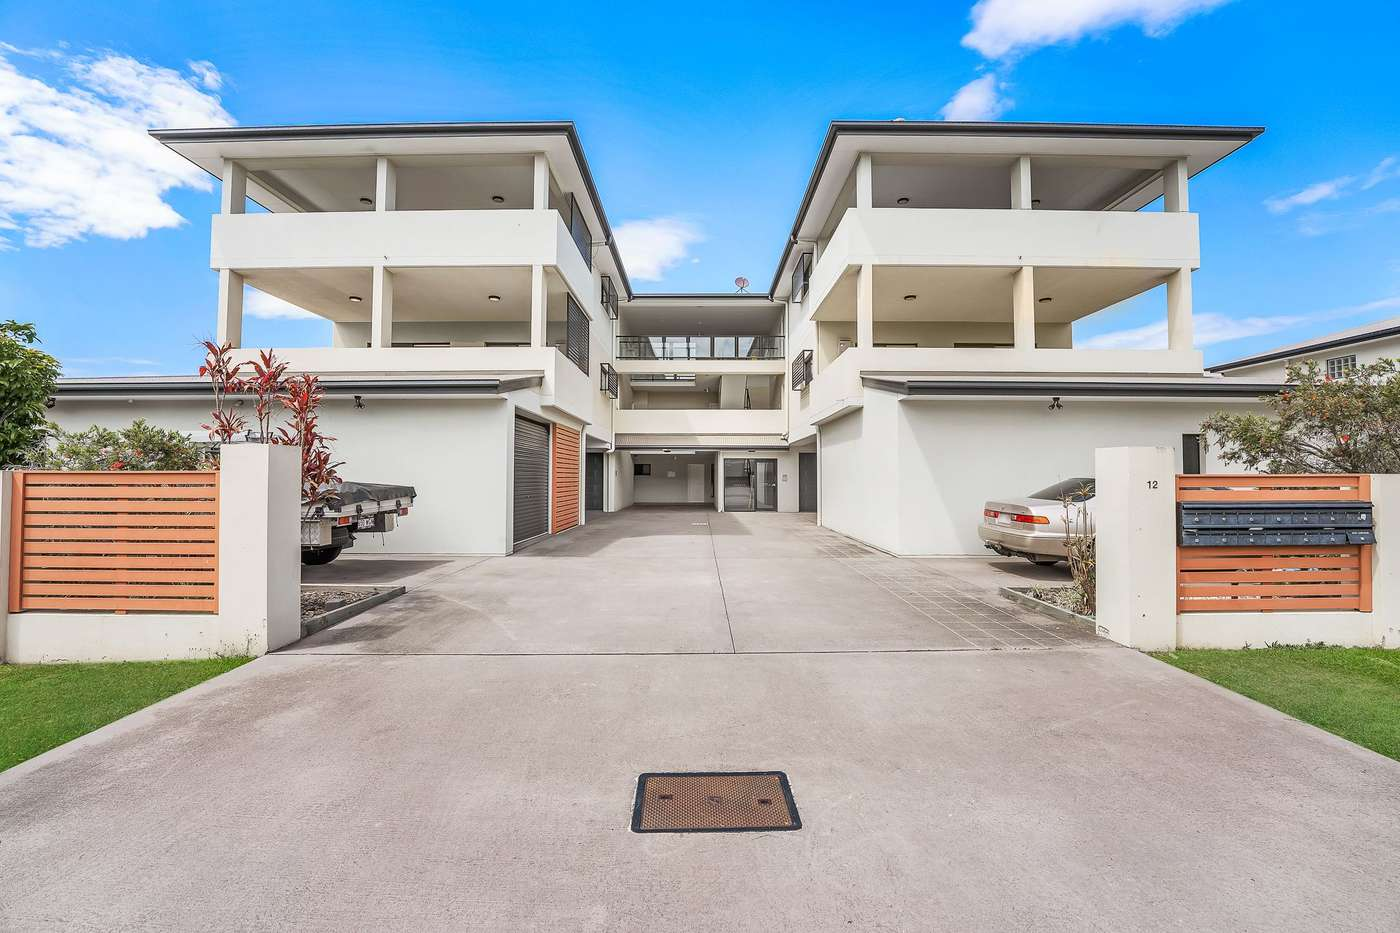 Main view of Homely unit listing, 4/12 Seeney Street, Zillmere, QLD 4034